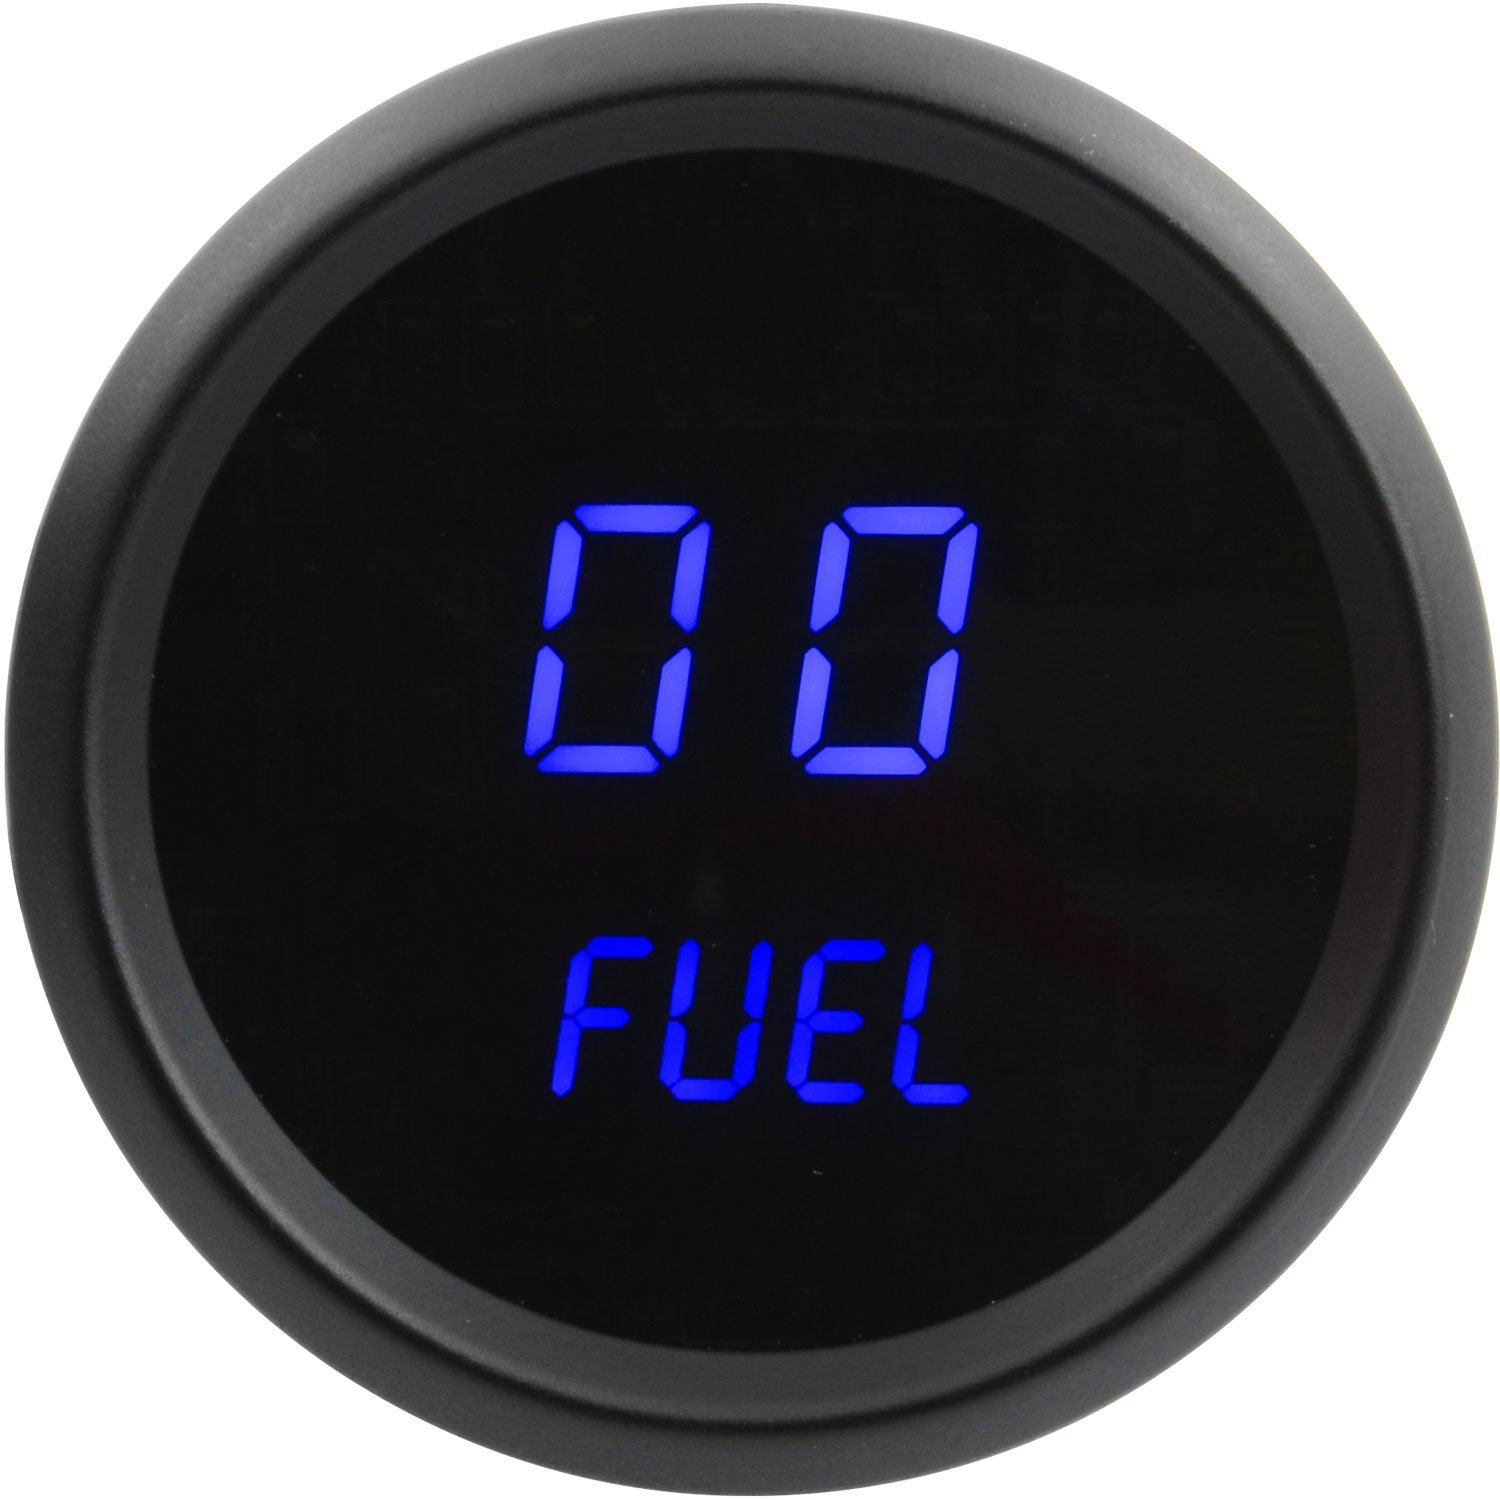 JEGS Performance Products 41433 Fuel Level Gauge LED Digital 99/% Read Out 2-1//16